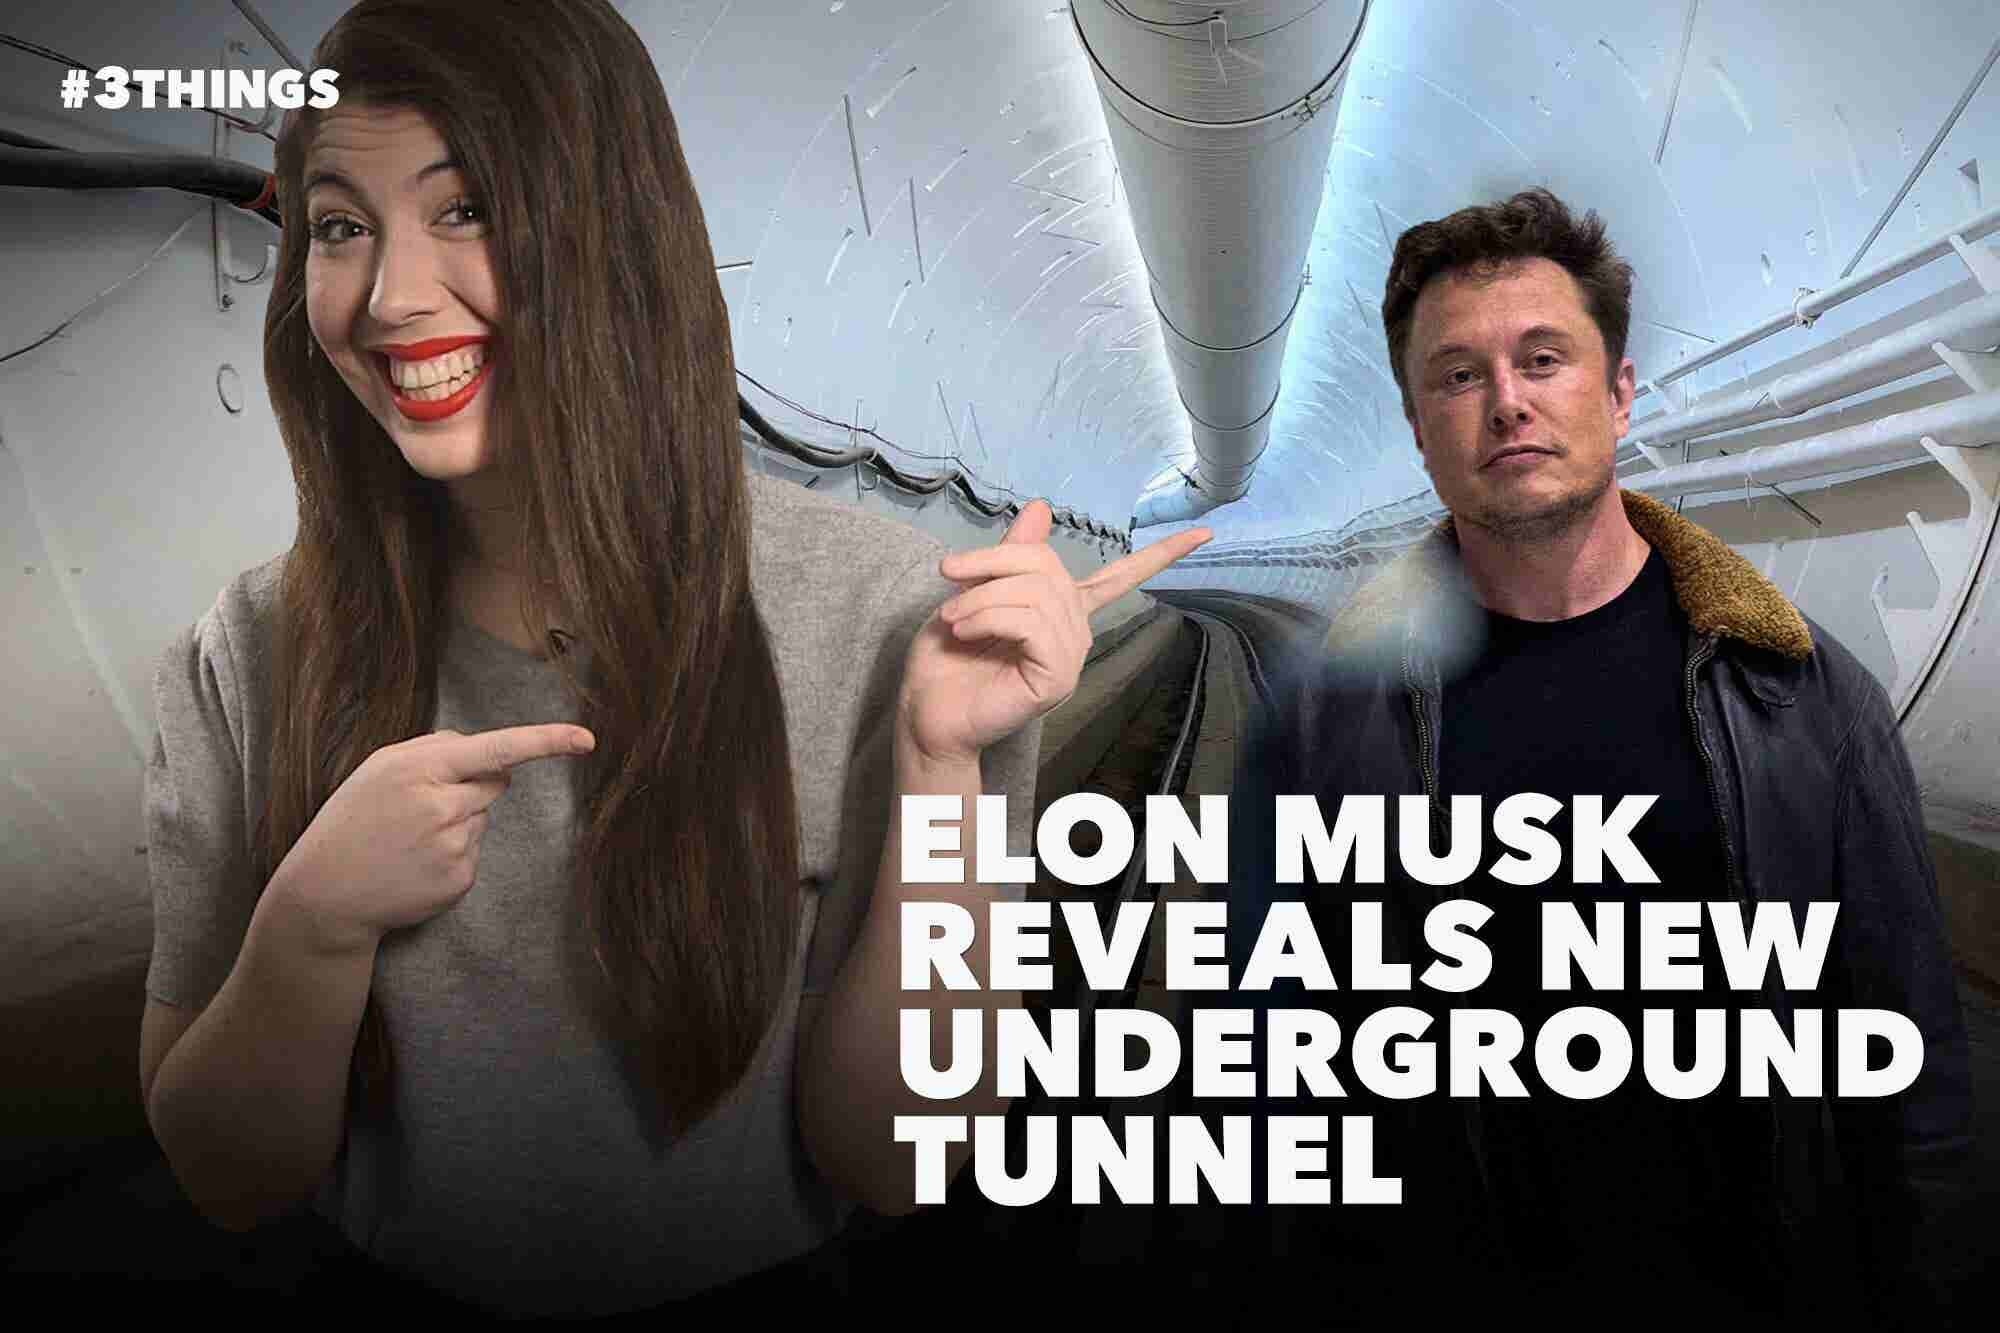 Elon Musk Reveals Tunnel, Facebook Hit With New Data Scandal and Crossword Secrets Revealed (60-Second Video)